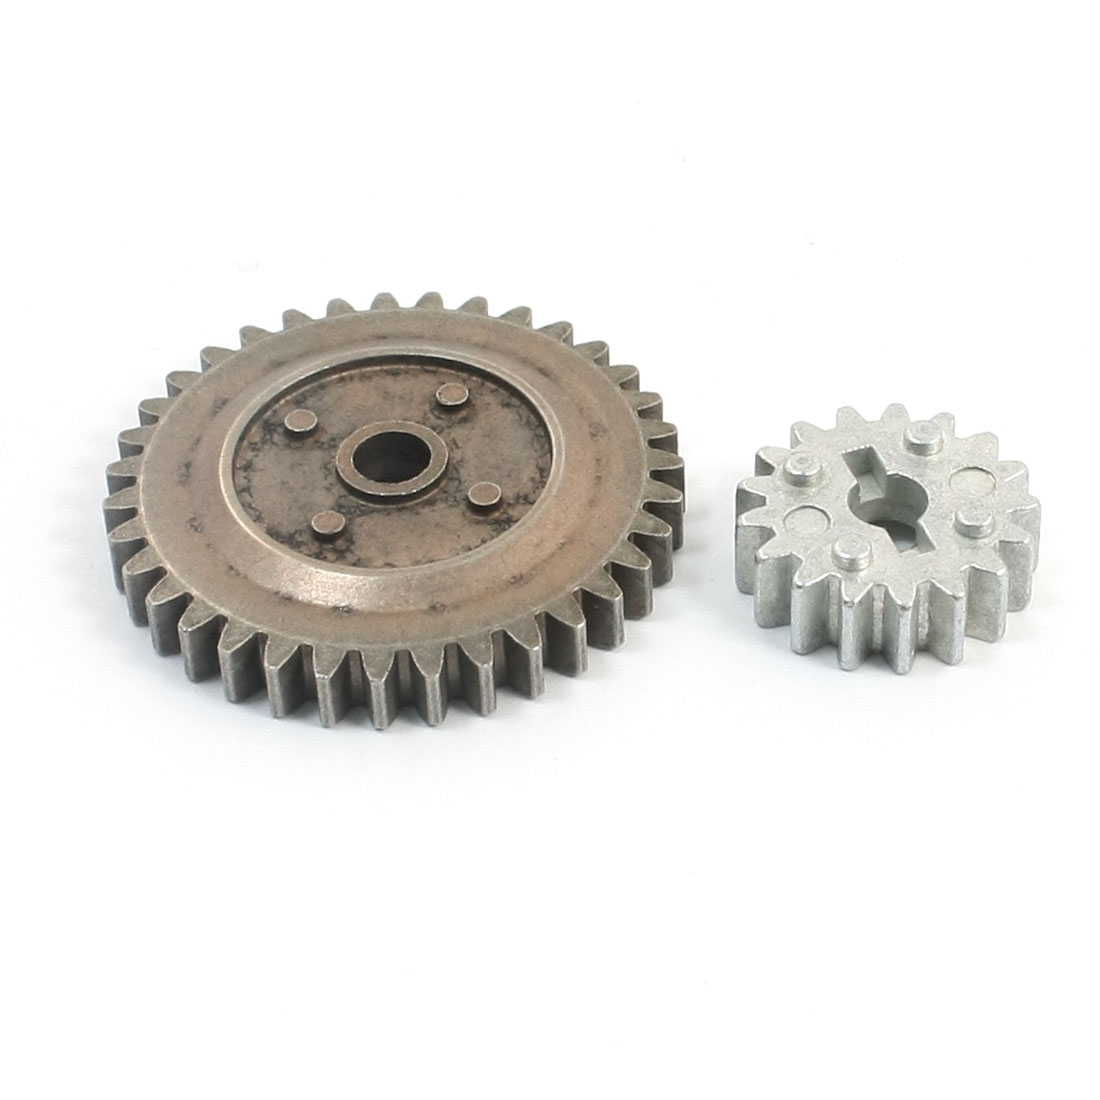 2pcs 08033 37mm 19mm Dia Steel Metal Spur Gear 35T 17T for 1/10 RC Car